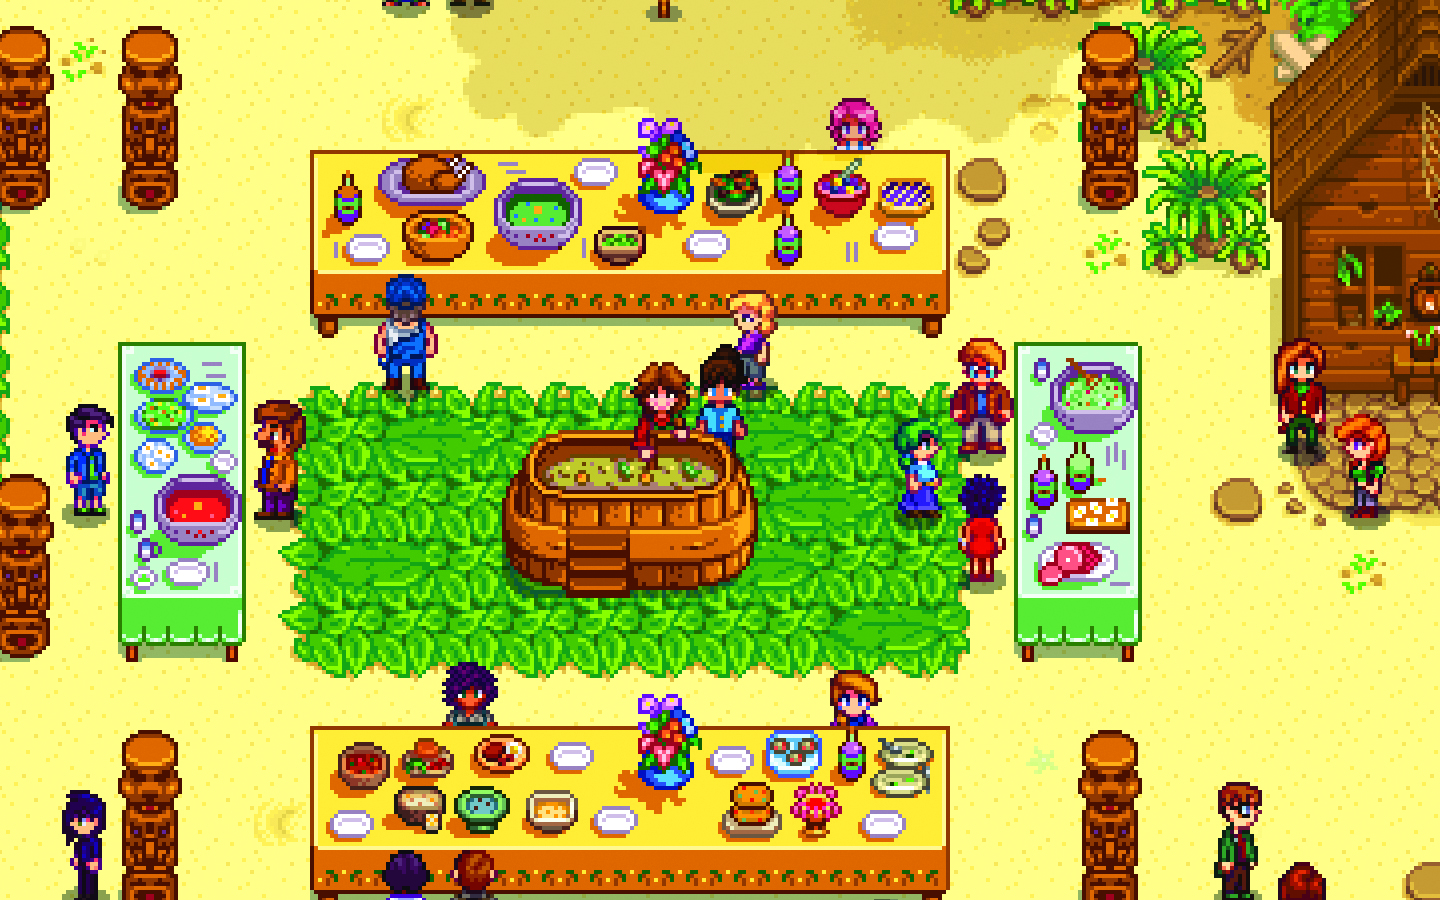 Stardew Valley Expanded mod